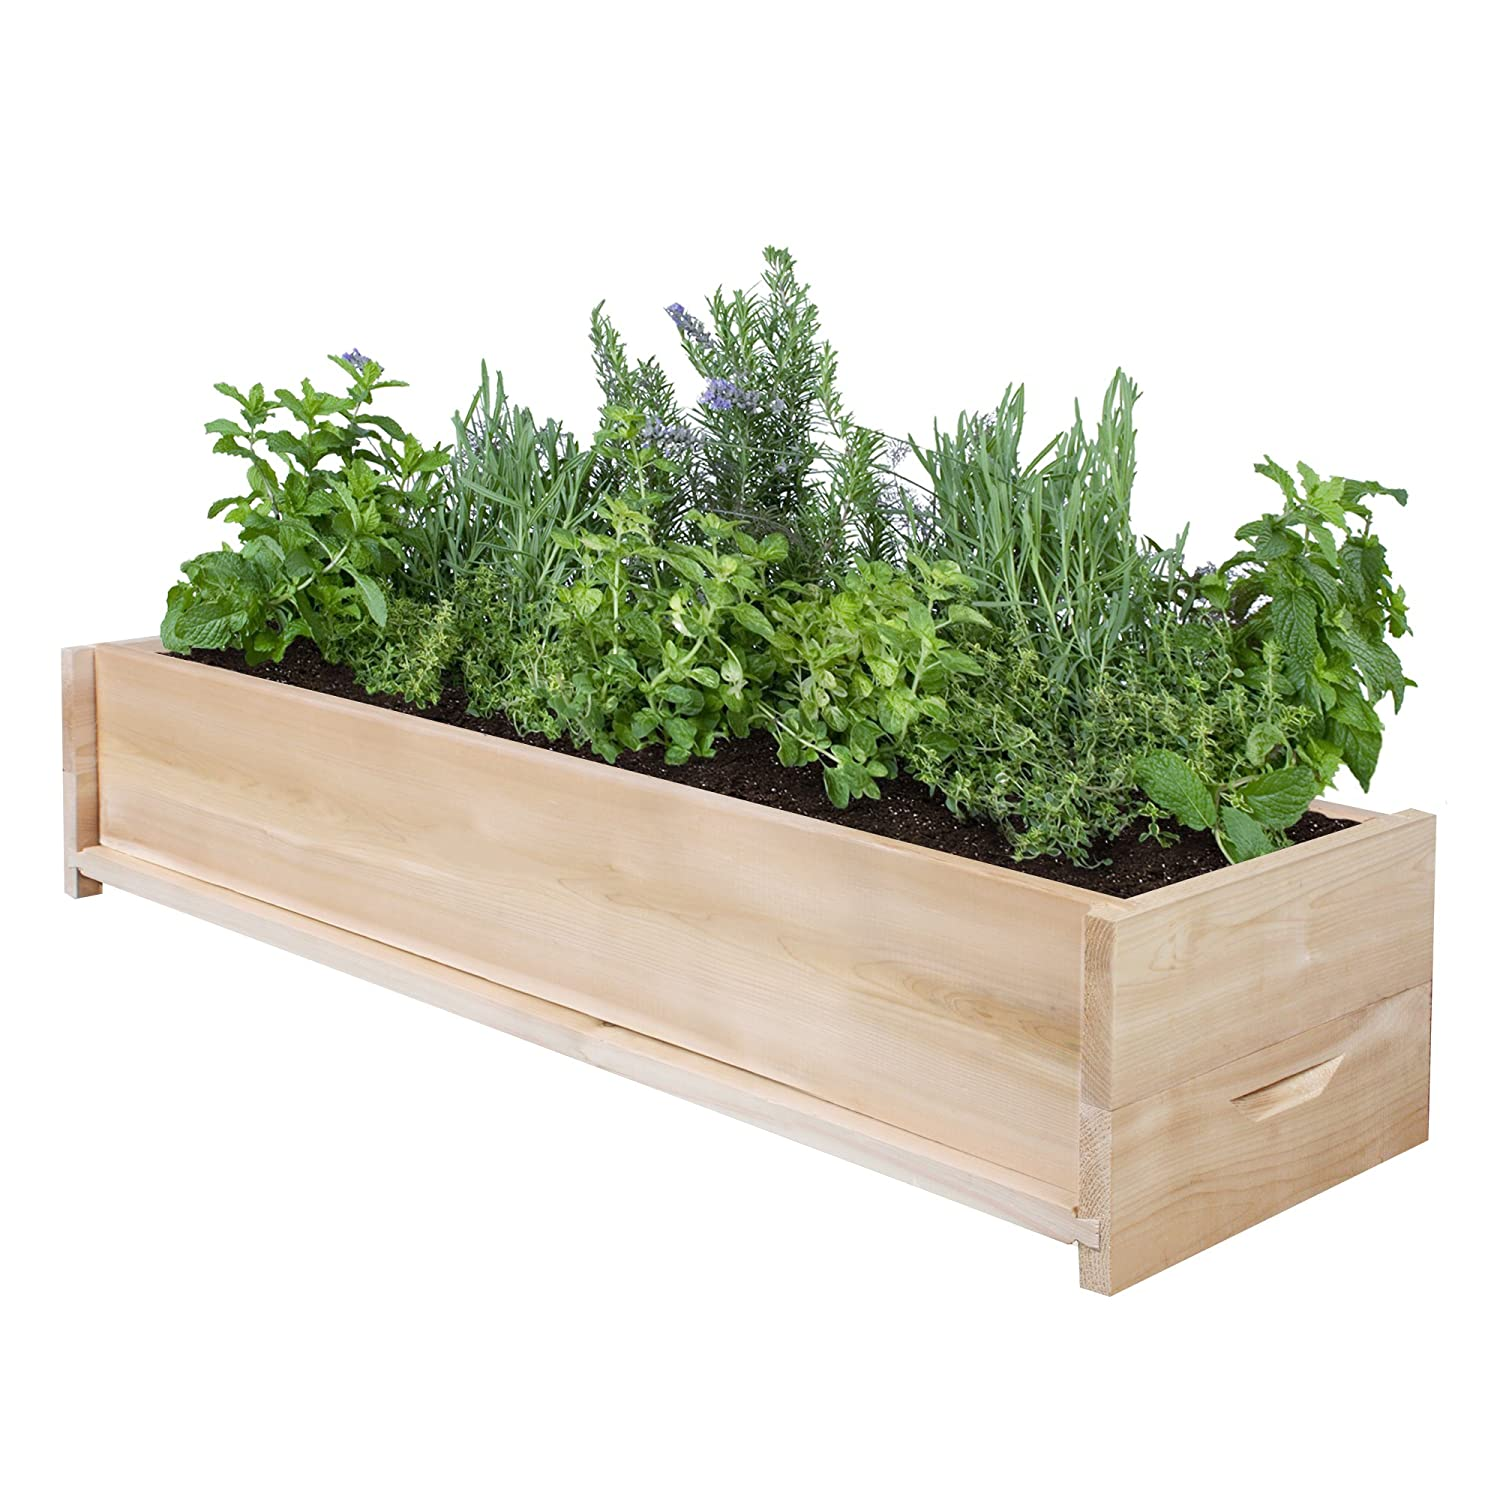 Amazon Com Greenes Fence Cedar Patio Planter Box 36 Inch 1